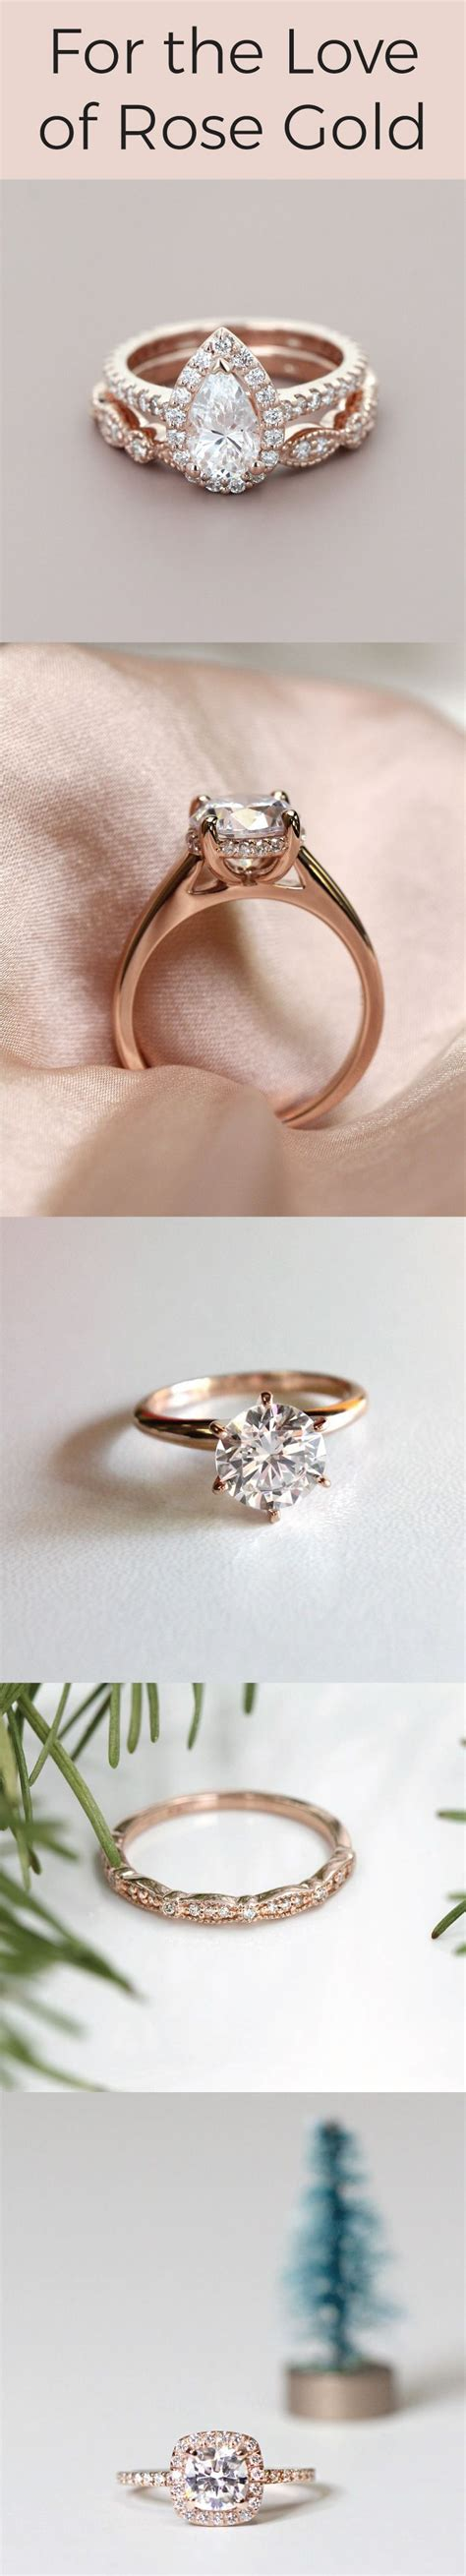 engagement rings top to bottom heroine accented